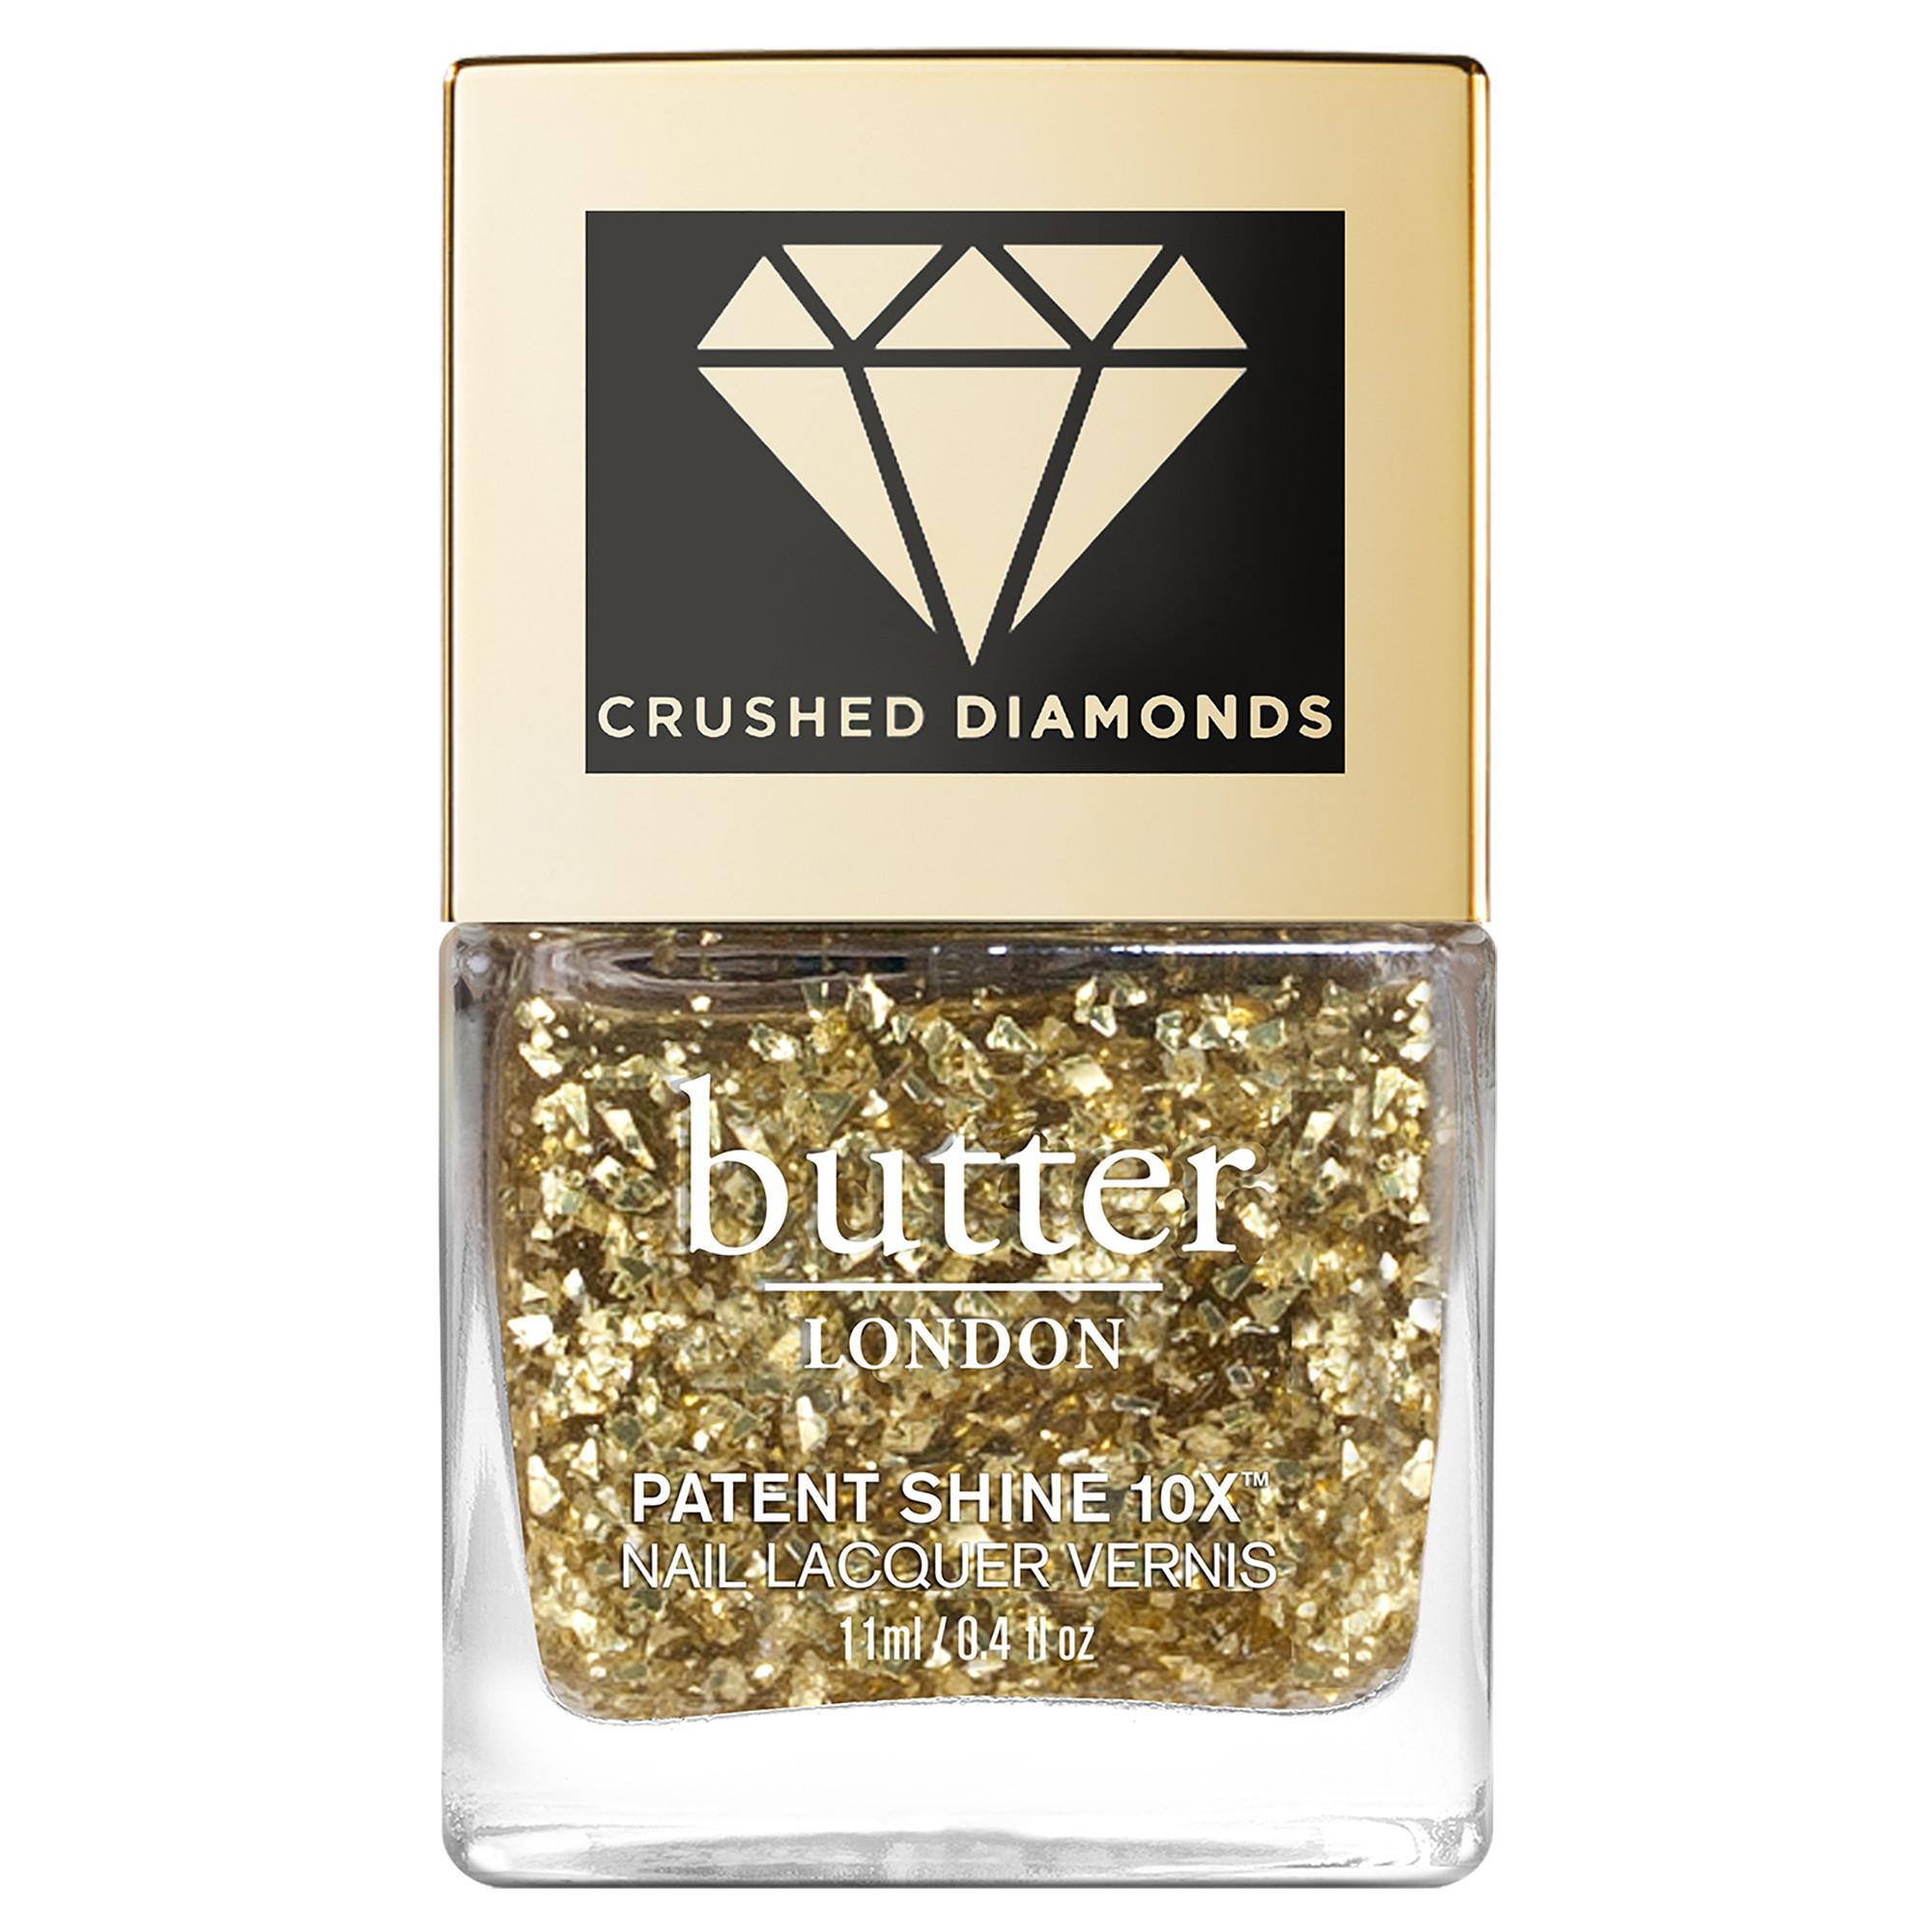 24K Crushed Diamonds Patent Shine 10X™ Nail Lacquer